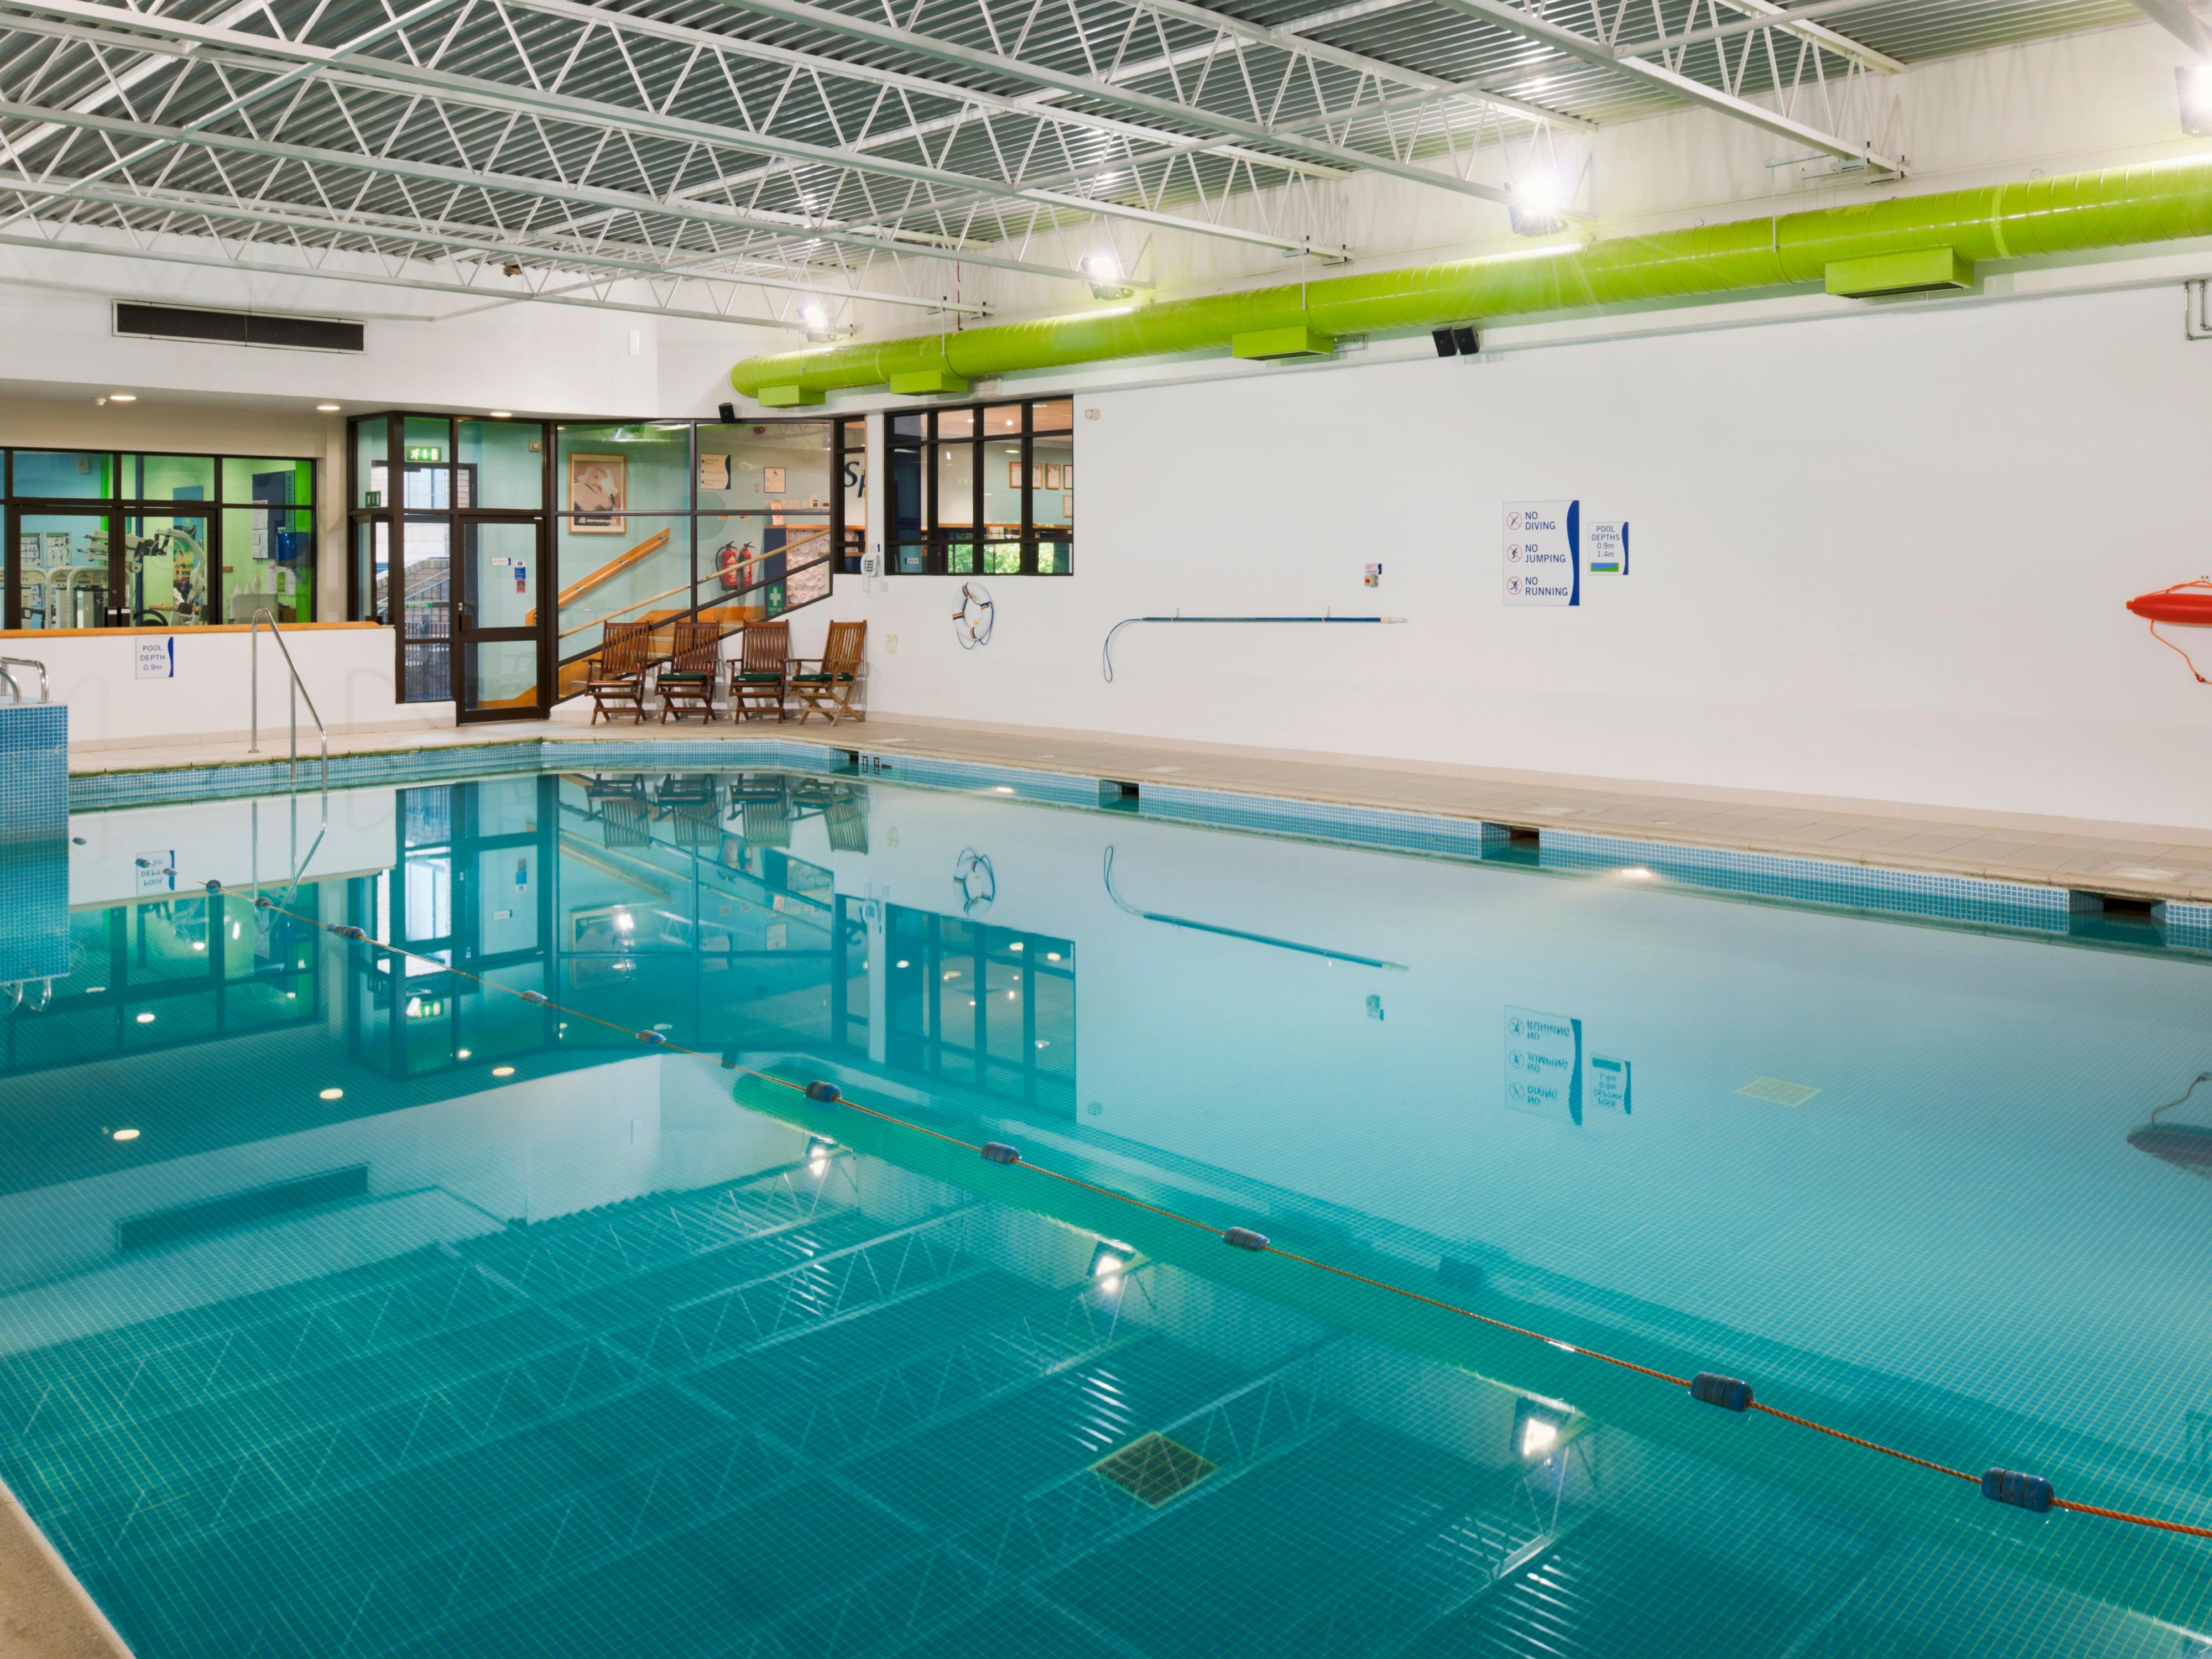 Enjoy a few lengths in our indoor pool